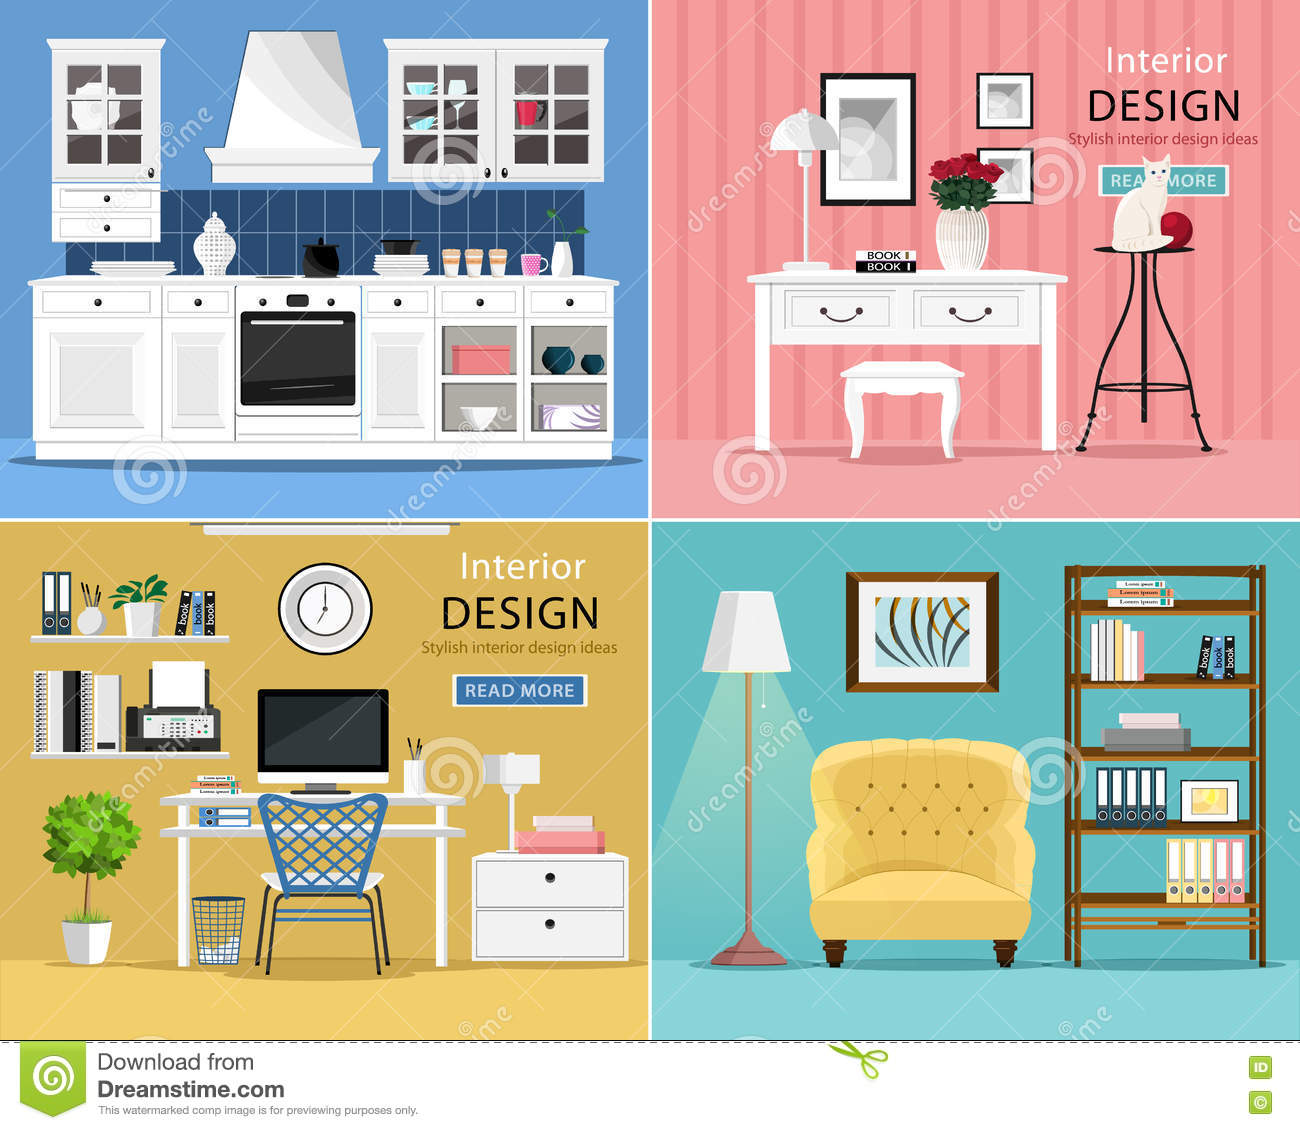 Set of cute and colorful graphic interior design room for Graphic design interior design